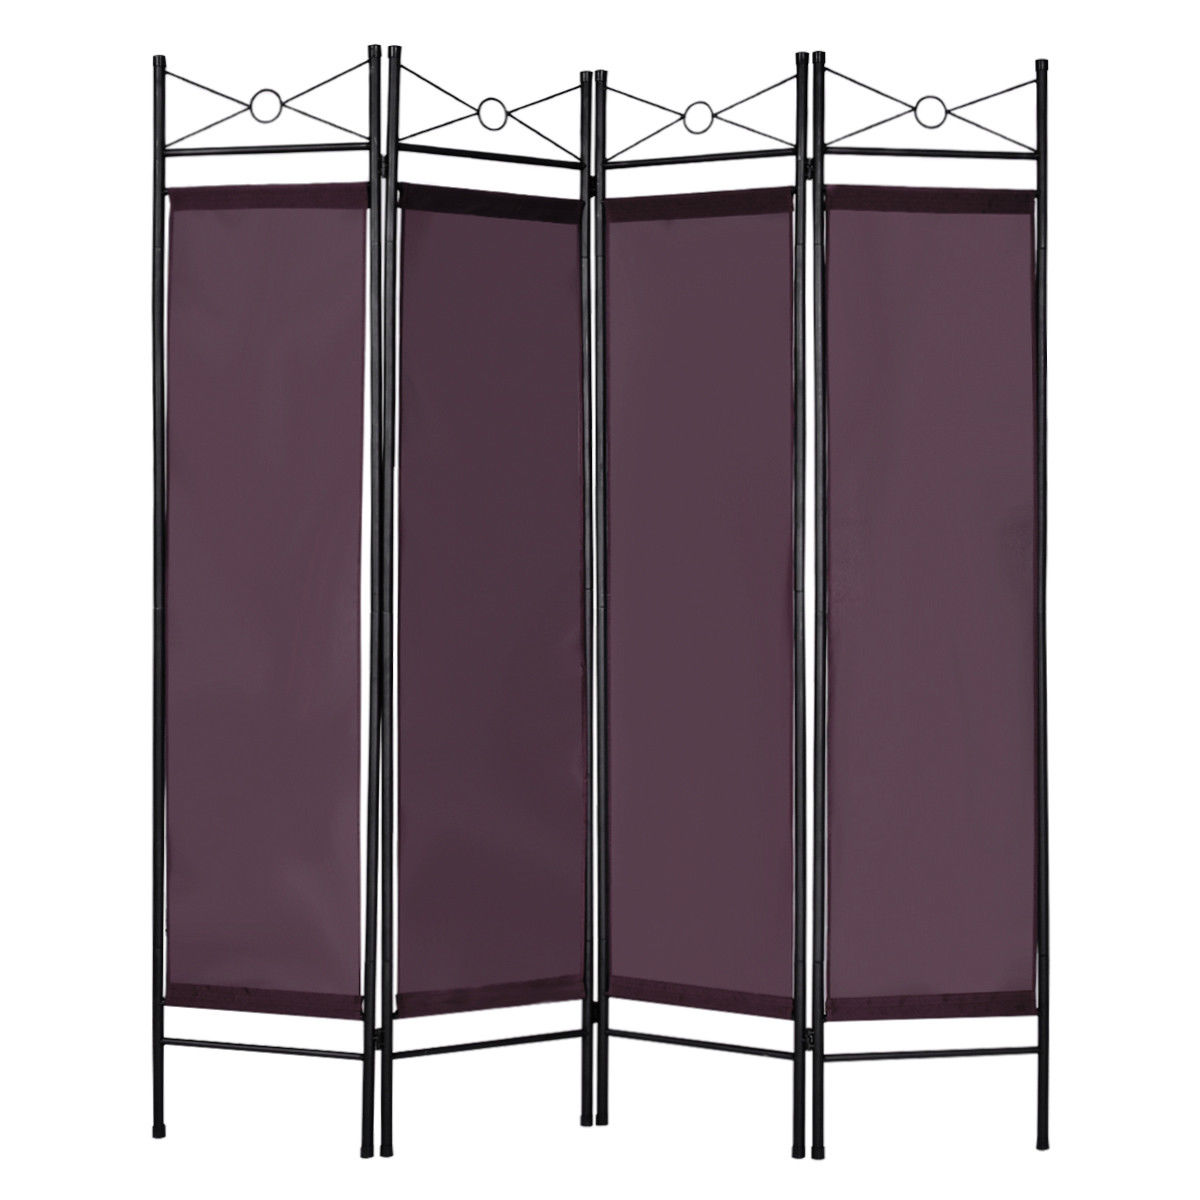 Costway 4 Panel Room Divider Privacy Screen Home Office Fabric Metal